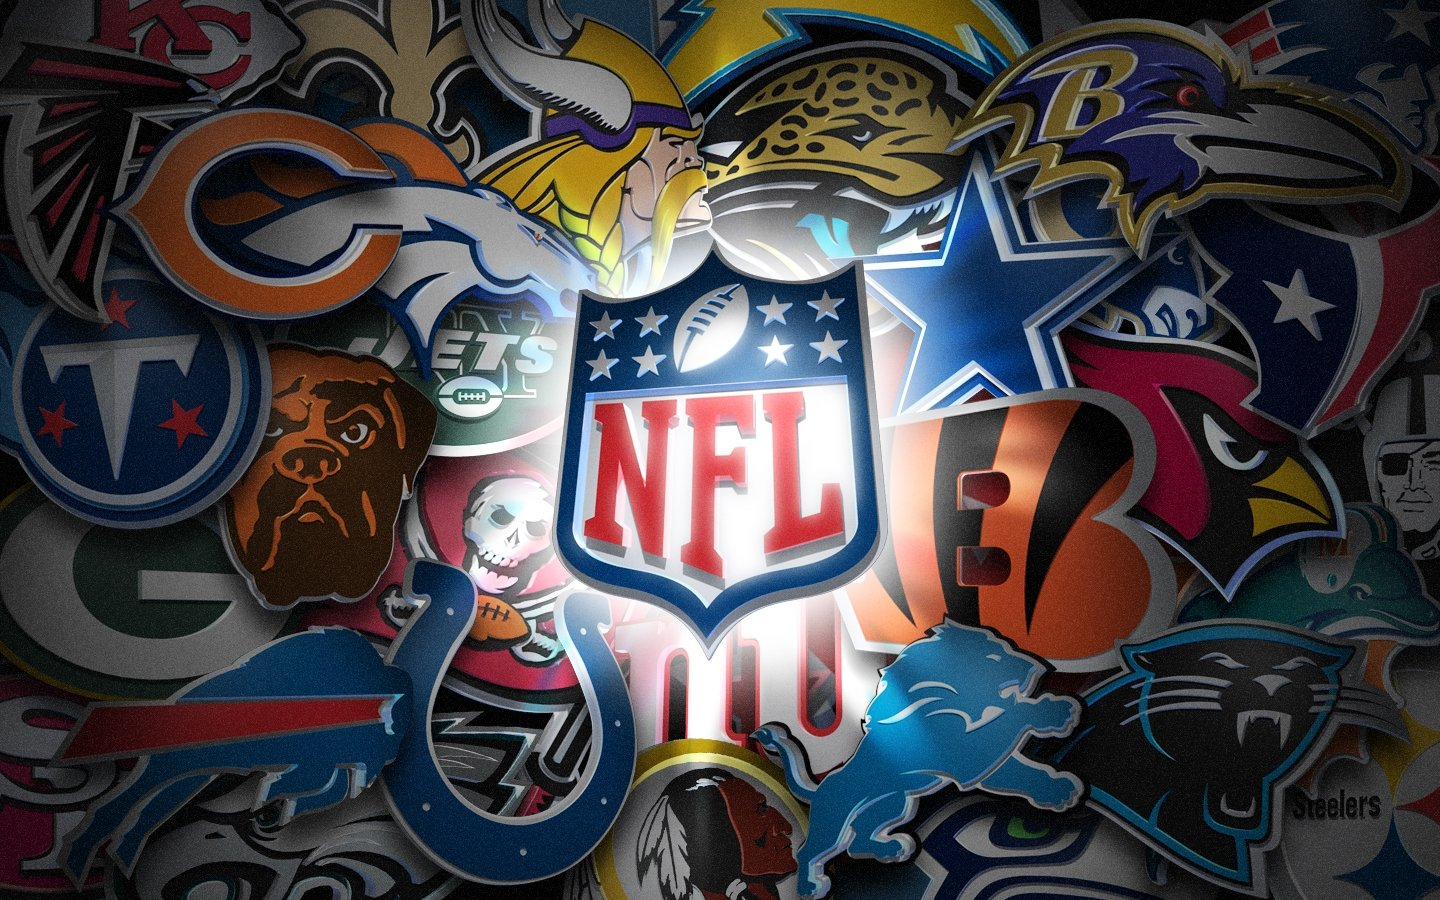 NFL team logos 2014 background HD wallpaper background 1440x900